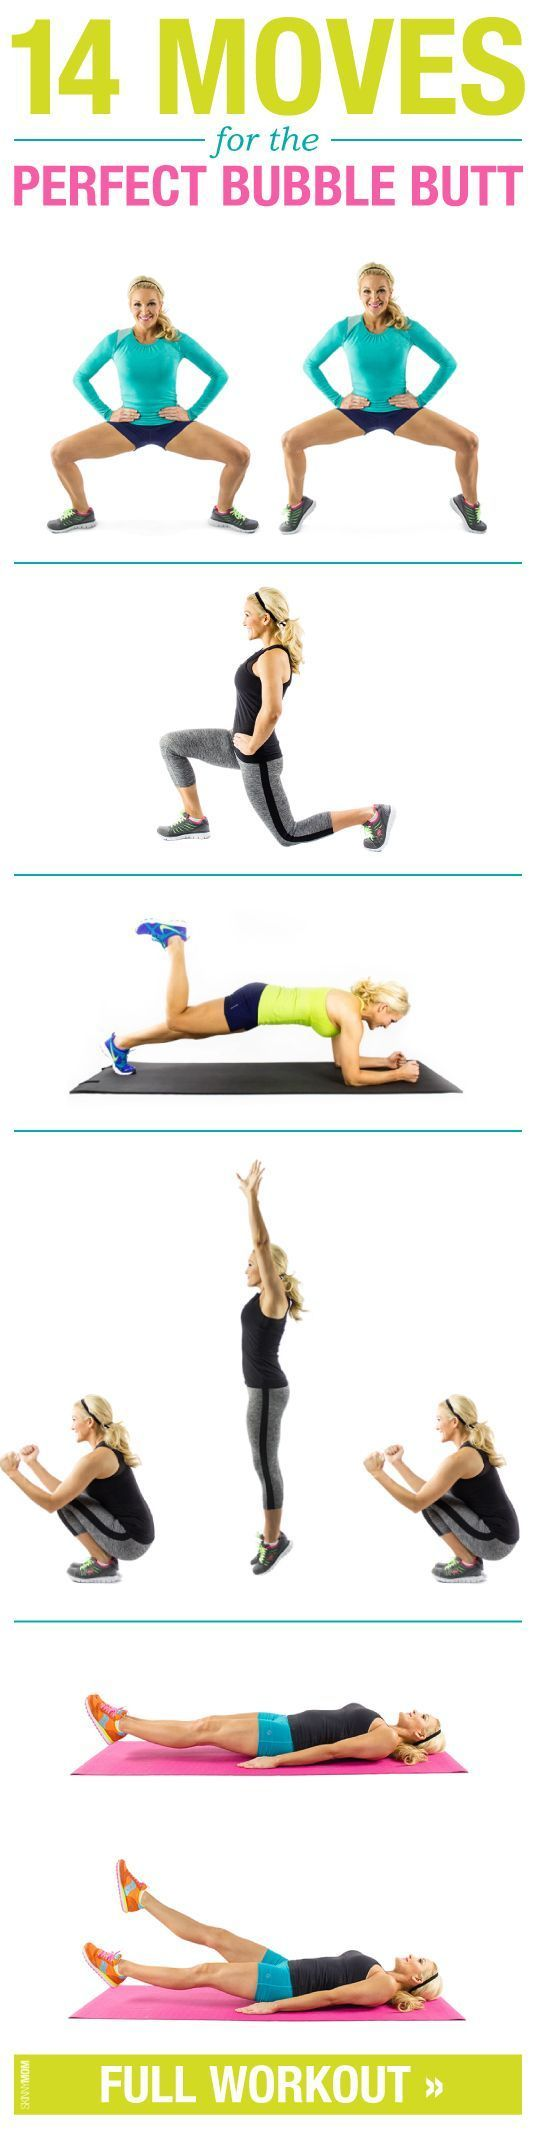 "Get a nice and toned booty with these moves/ I don't know if I want a ""bubble butt"", but (;)) we'll see."